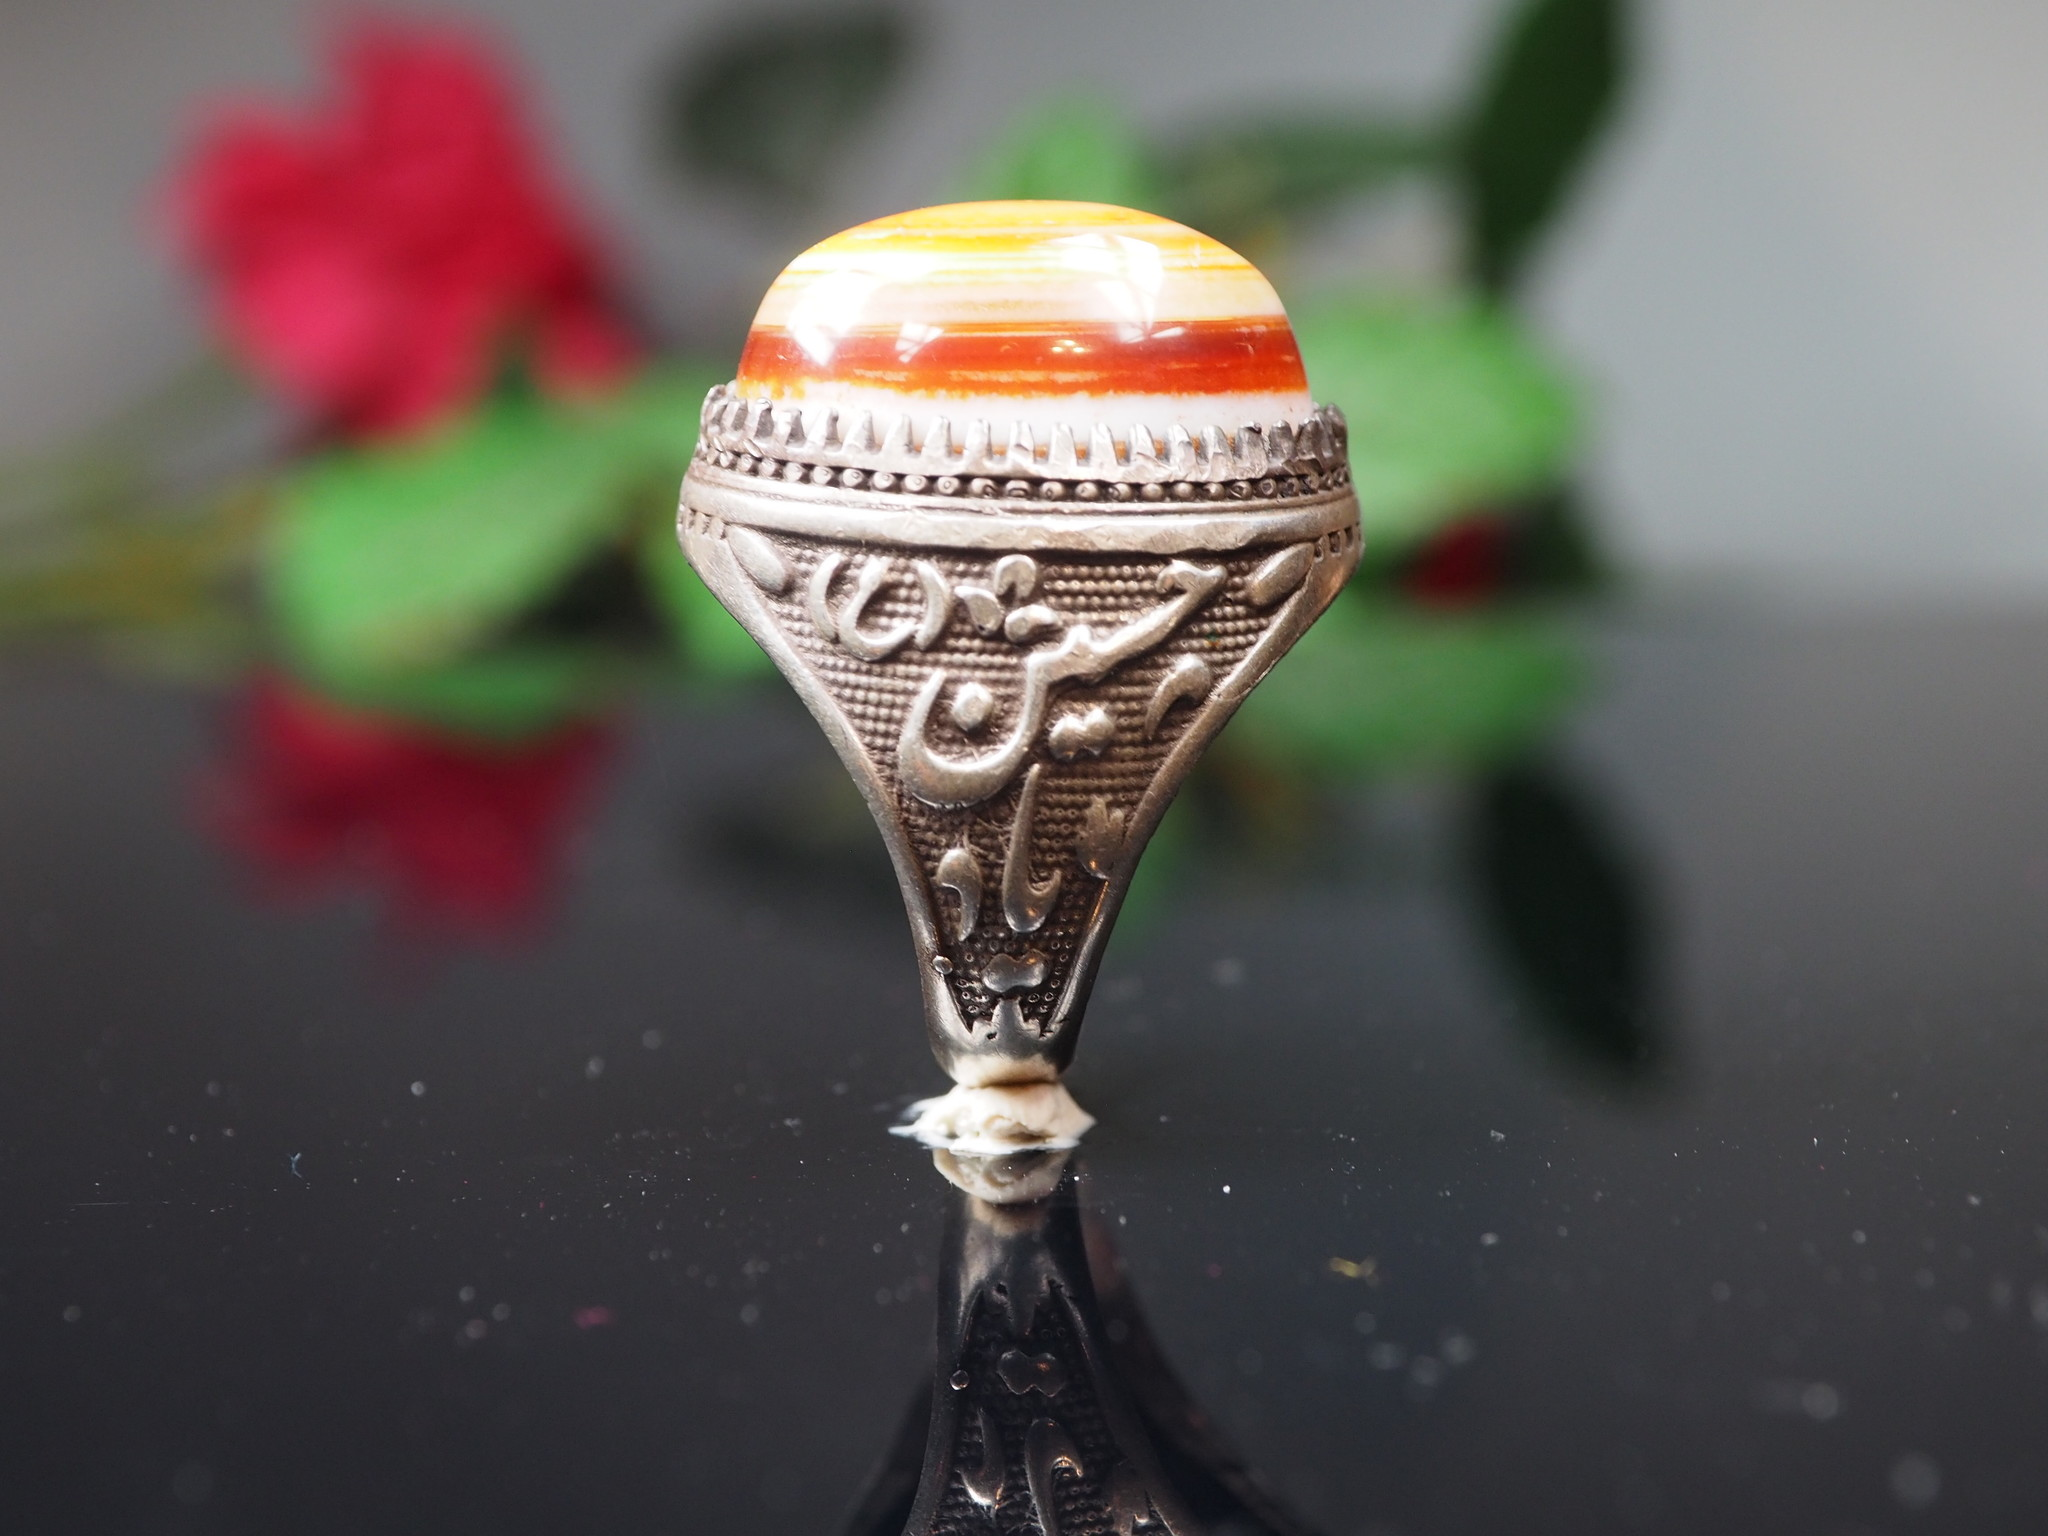 antique handmade islamic Silver Carnelian eye agate stone turkmen statement AQEEQ ring from Afghanistan No:WL21/17